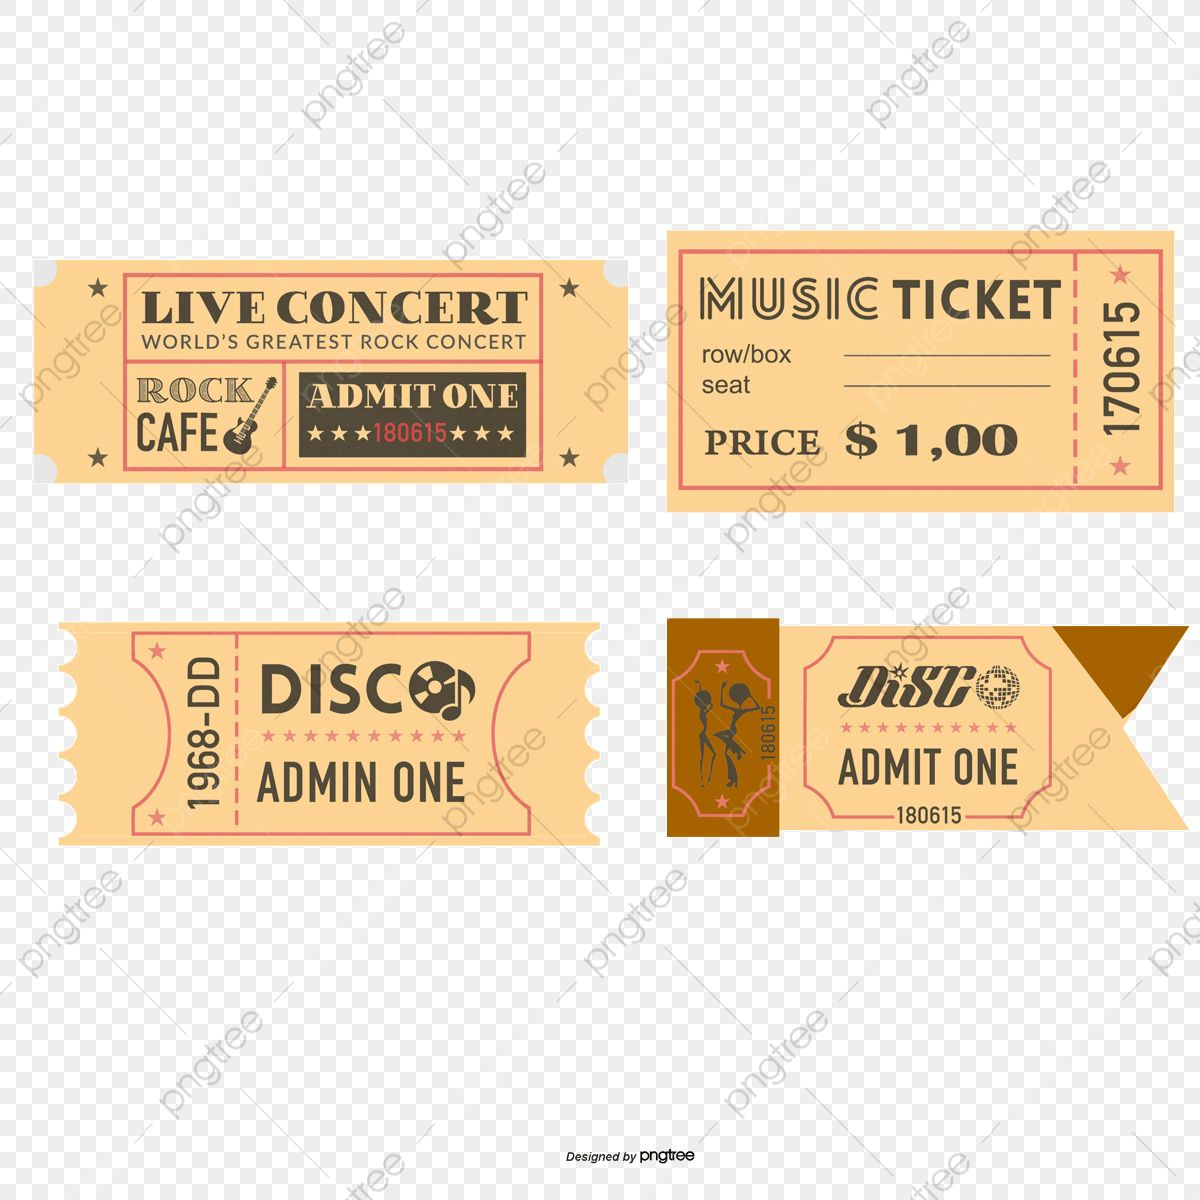 006 Unbelievable Vintage Concert Ticket Template Free Download Picture Full